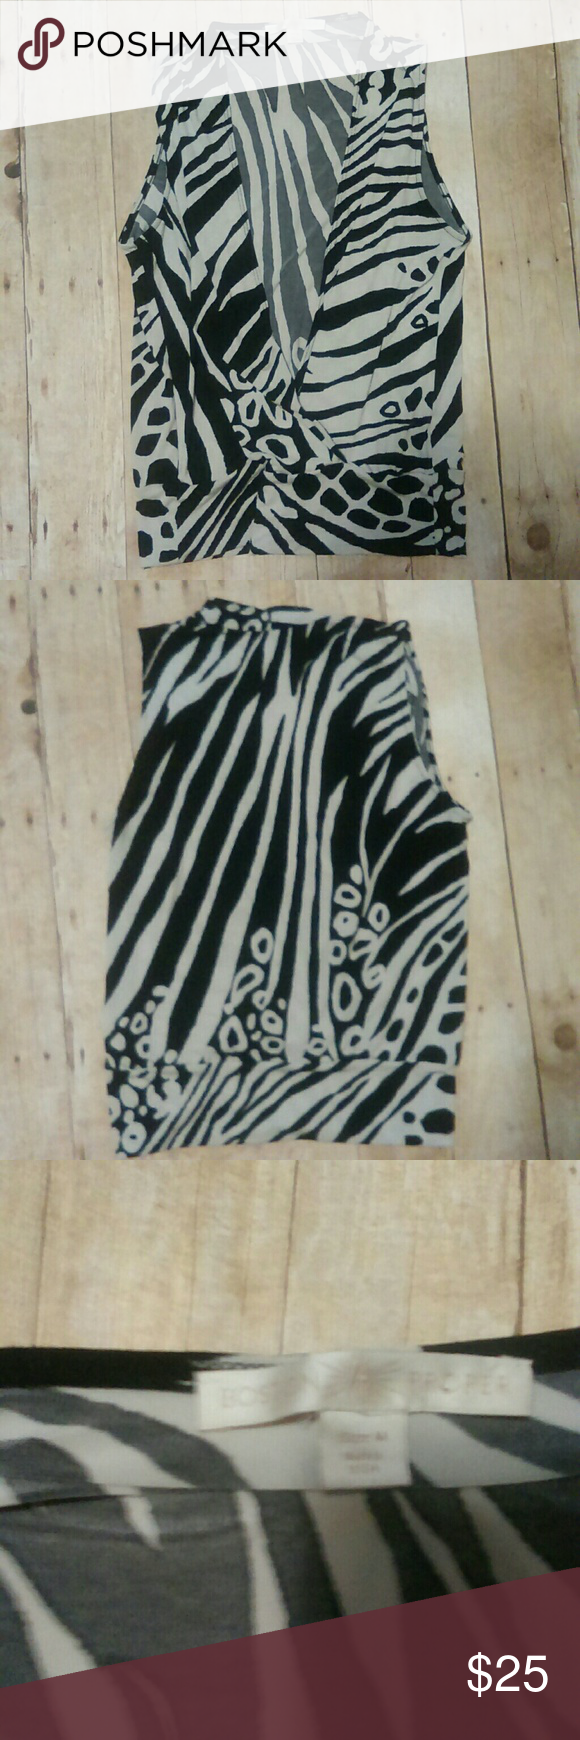 """Boston Proper Sleeveless Wrap Top Size M -Sleeveless faux wrap top - Black and white animal print -Size medium -95% polyester and 5% Spandex -Armpit to armpit measures at 22"""" -Length from shoulder to hem is 26"""" -Comes from a smoke and pet free home Boston Proper Tops"""